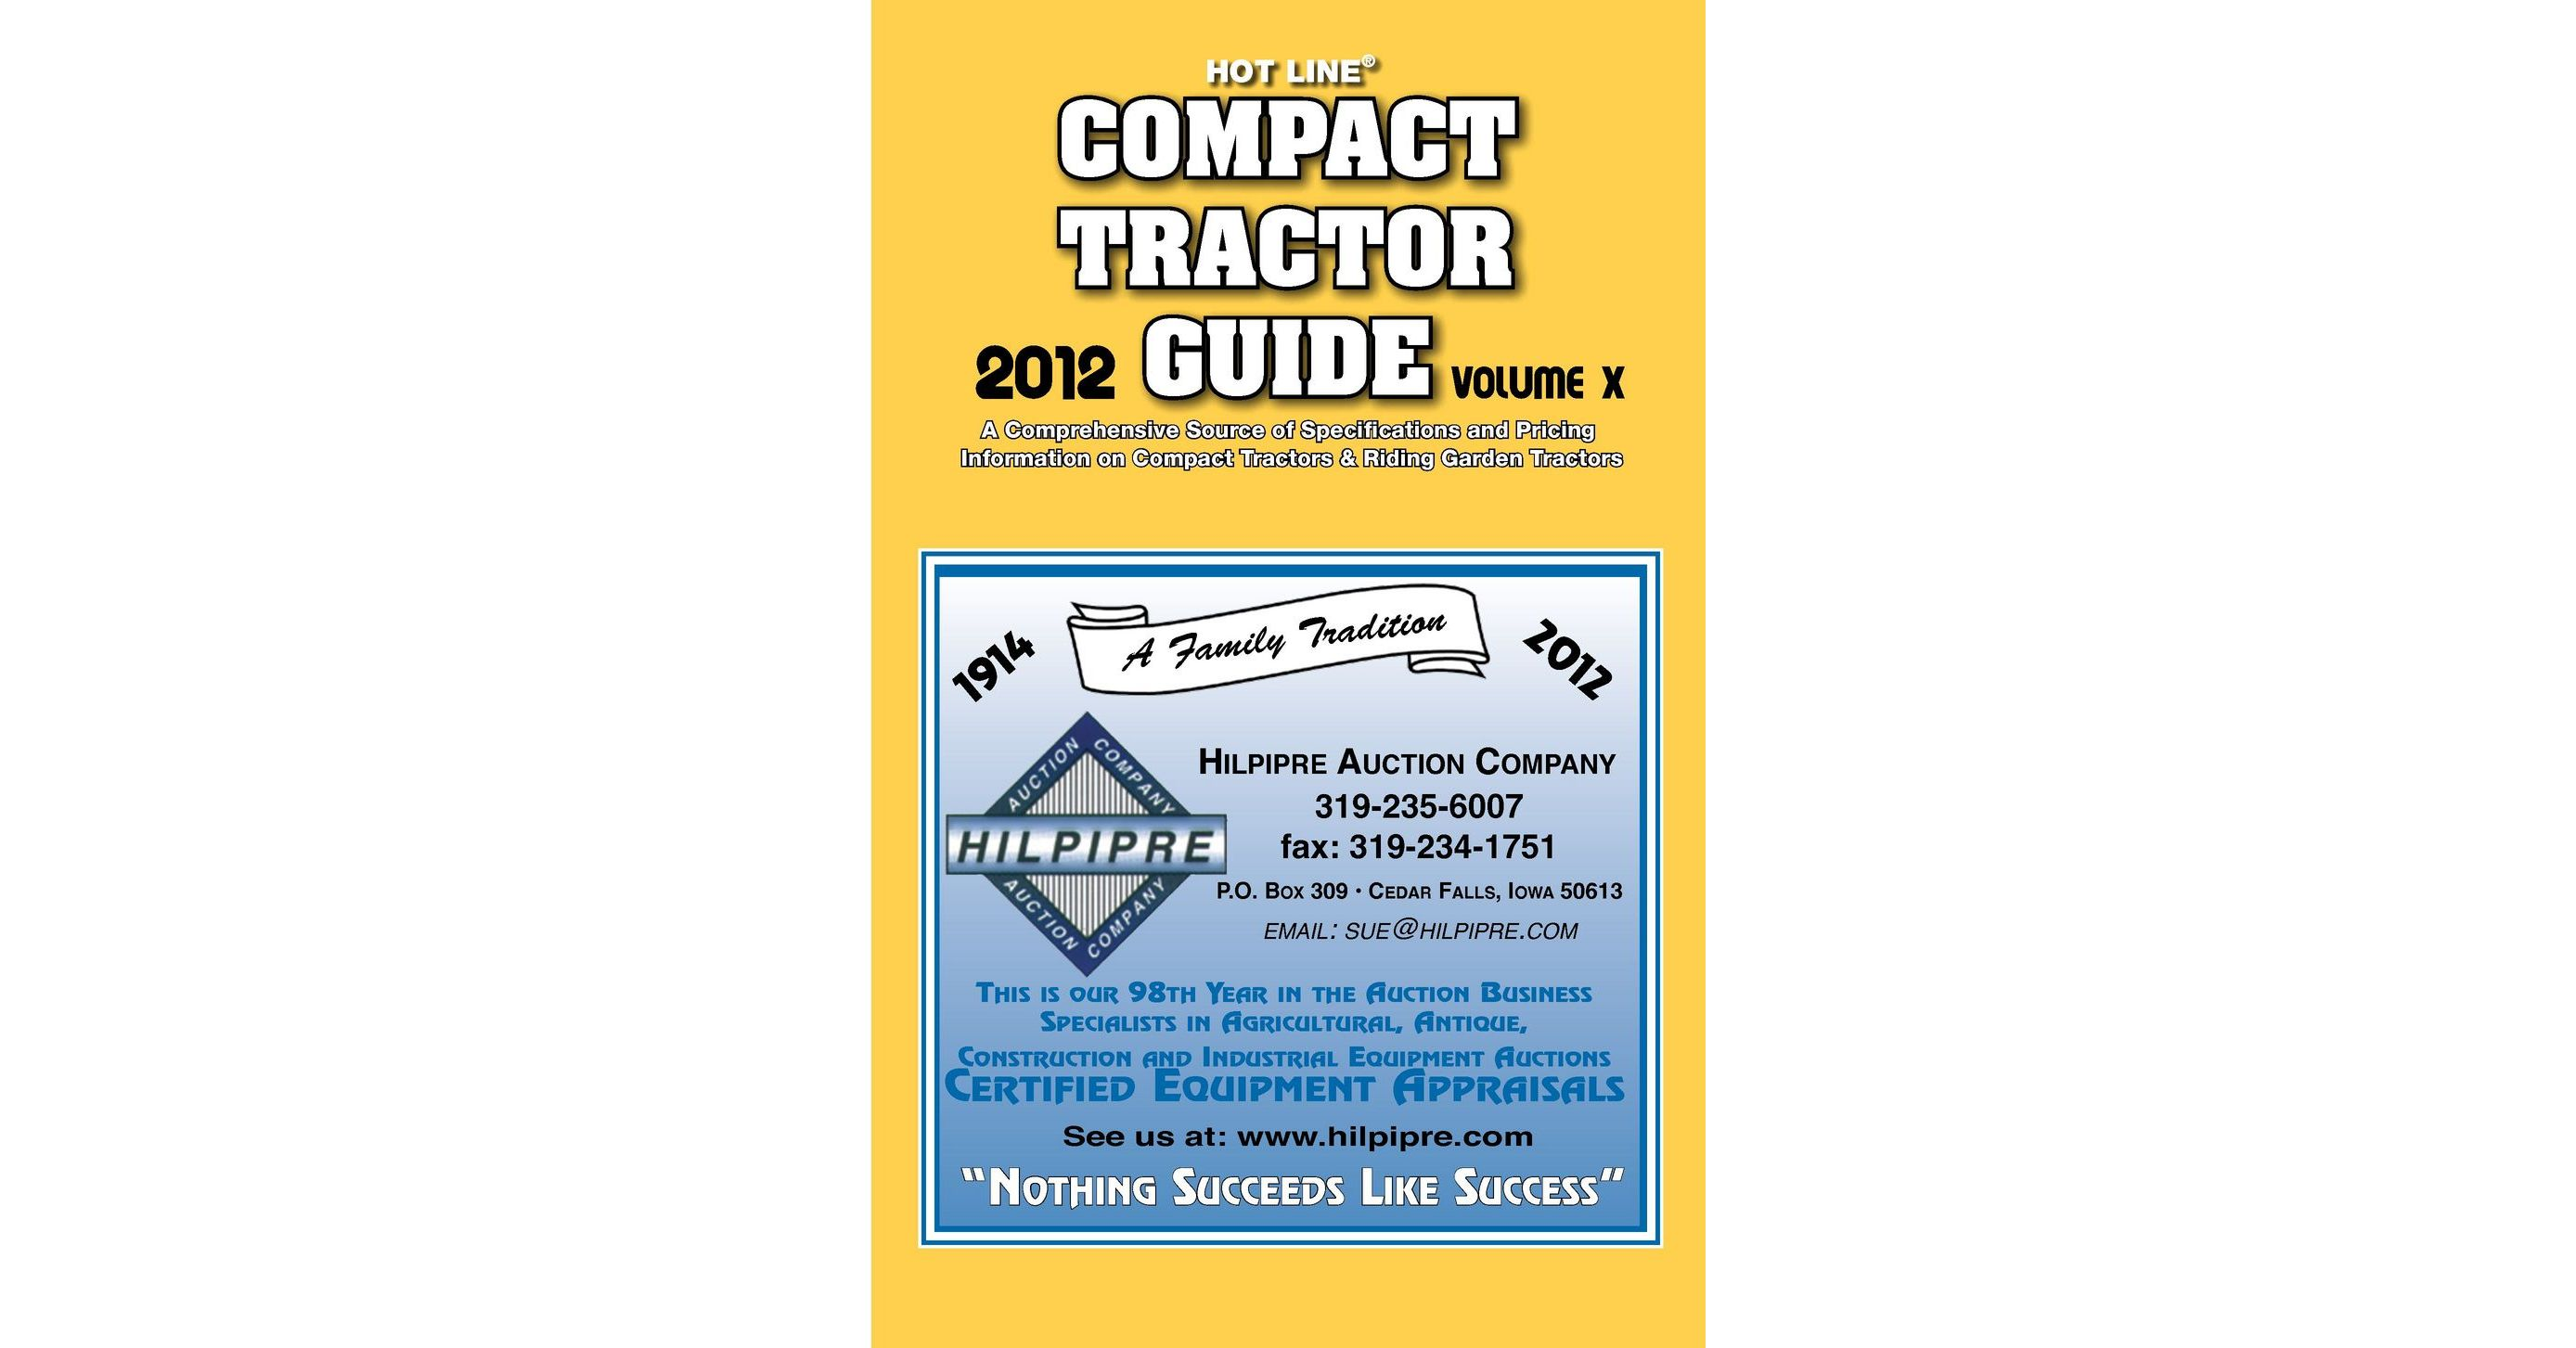 Compact Tractor Guide